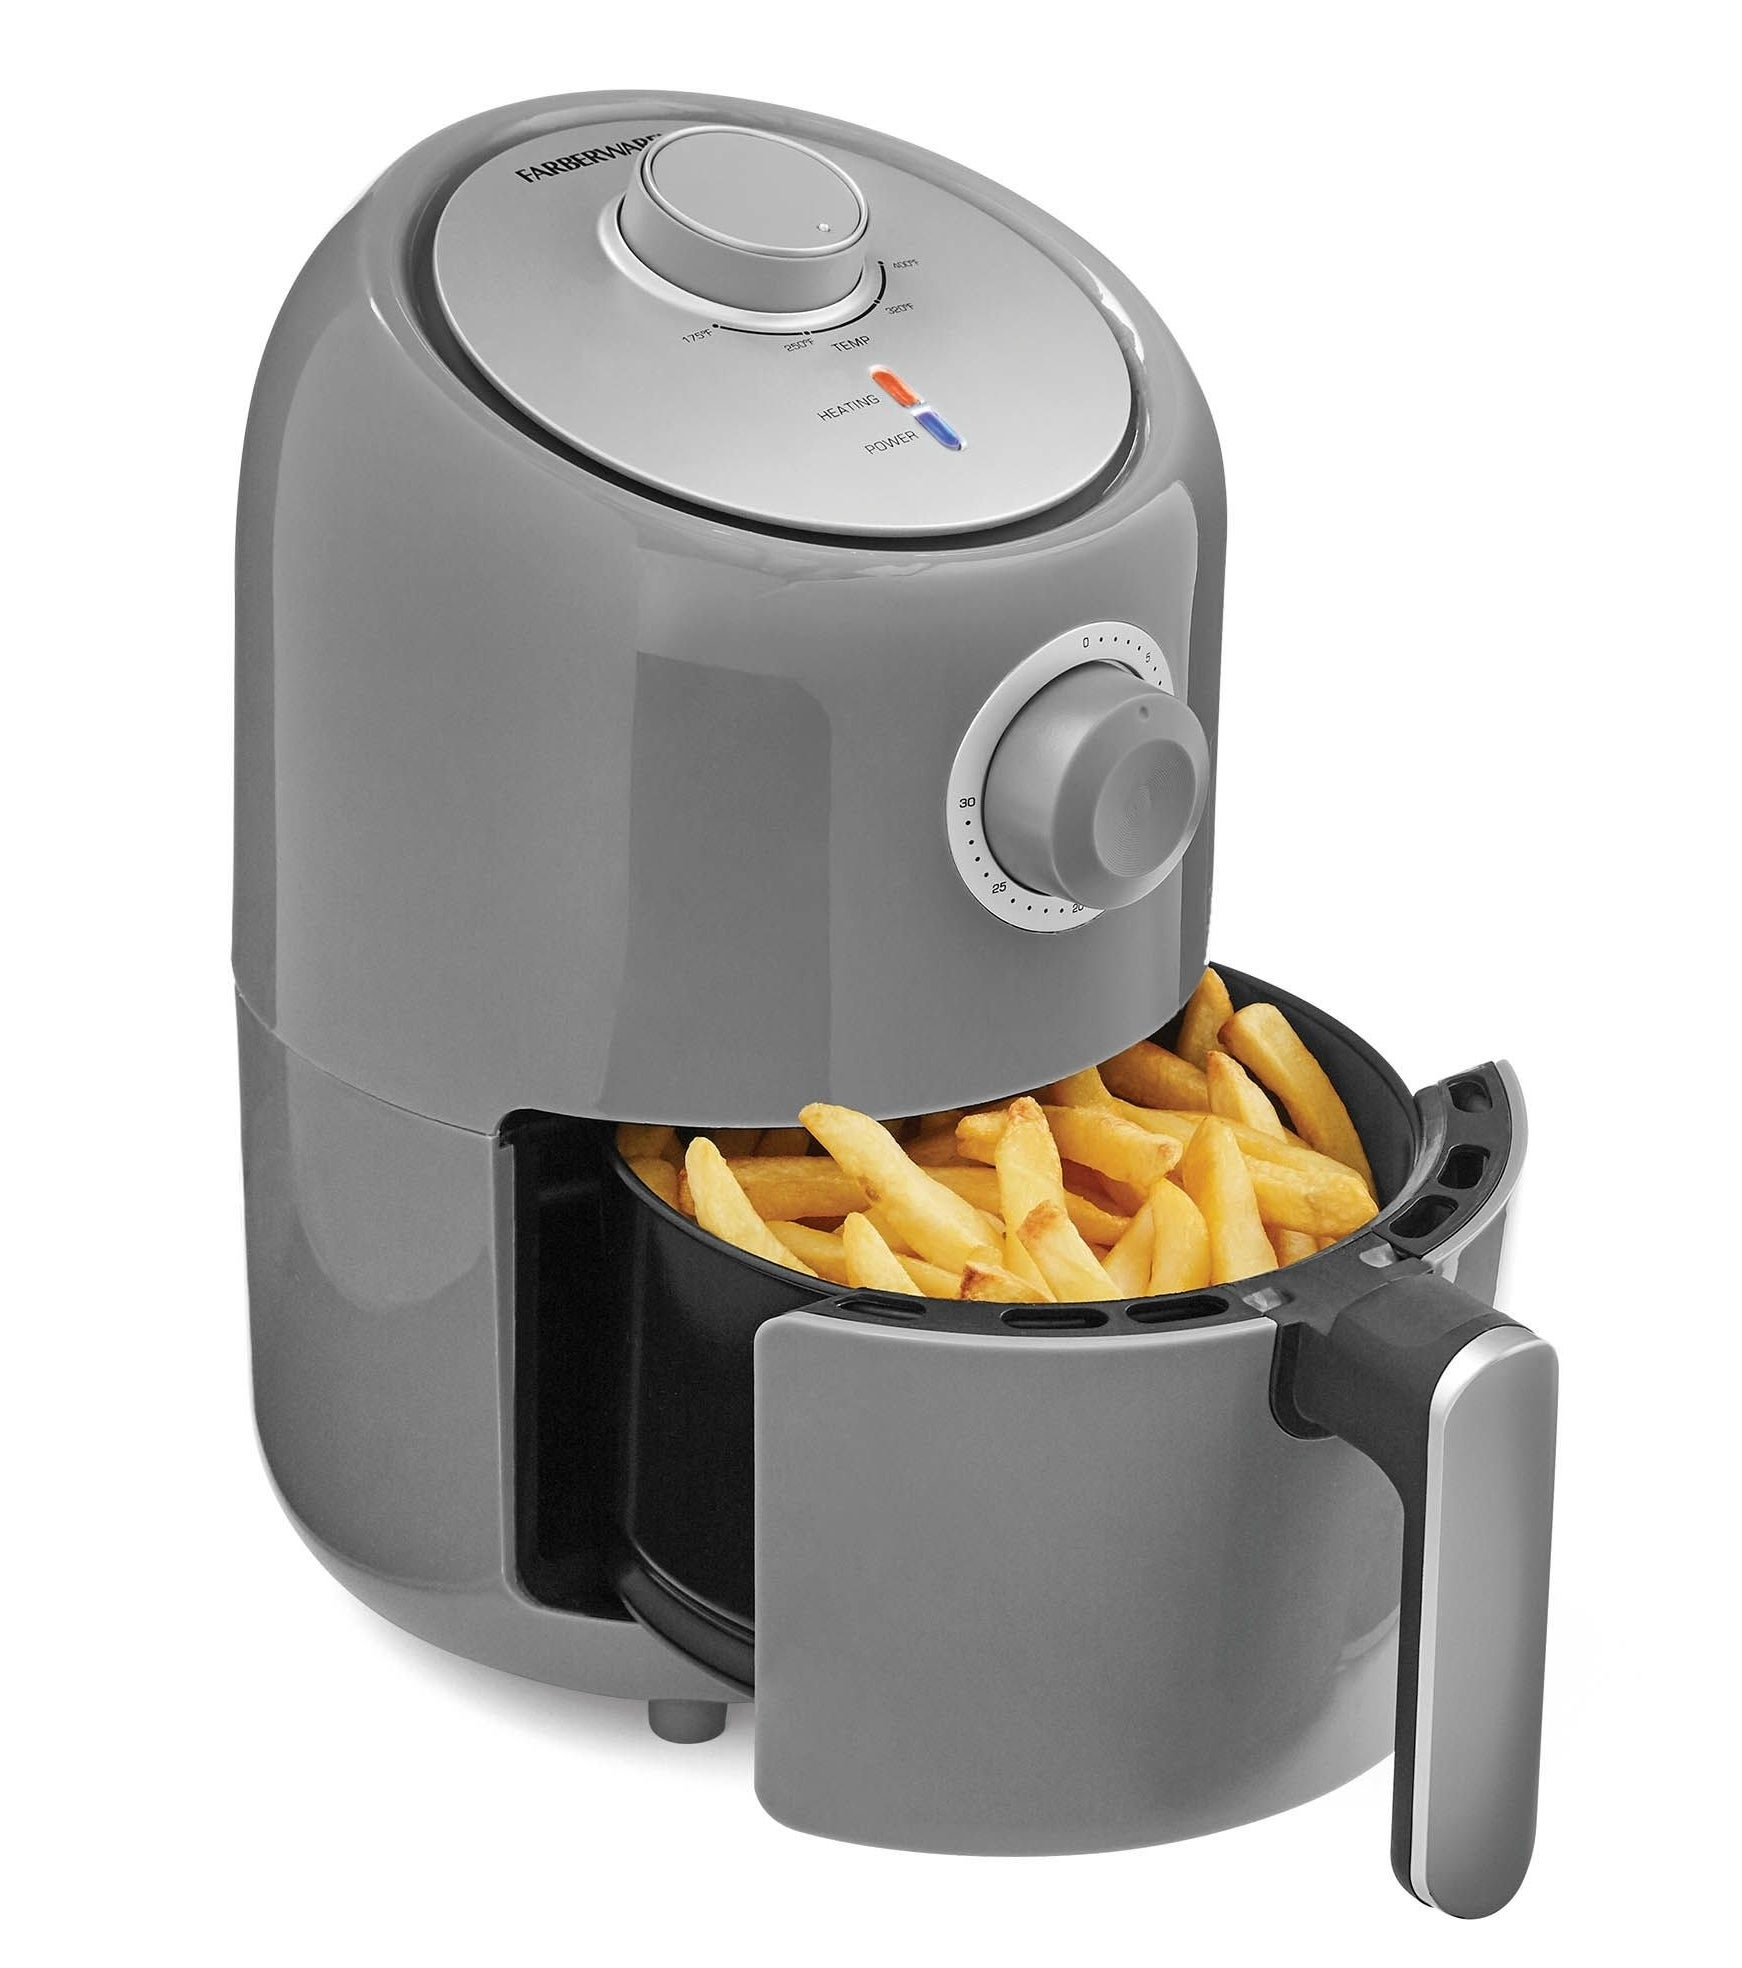 The air fryer in gray